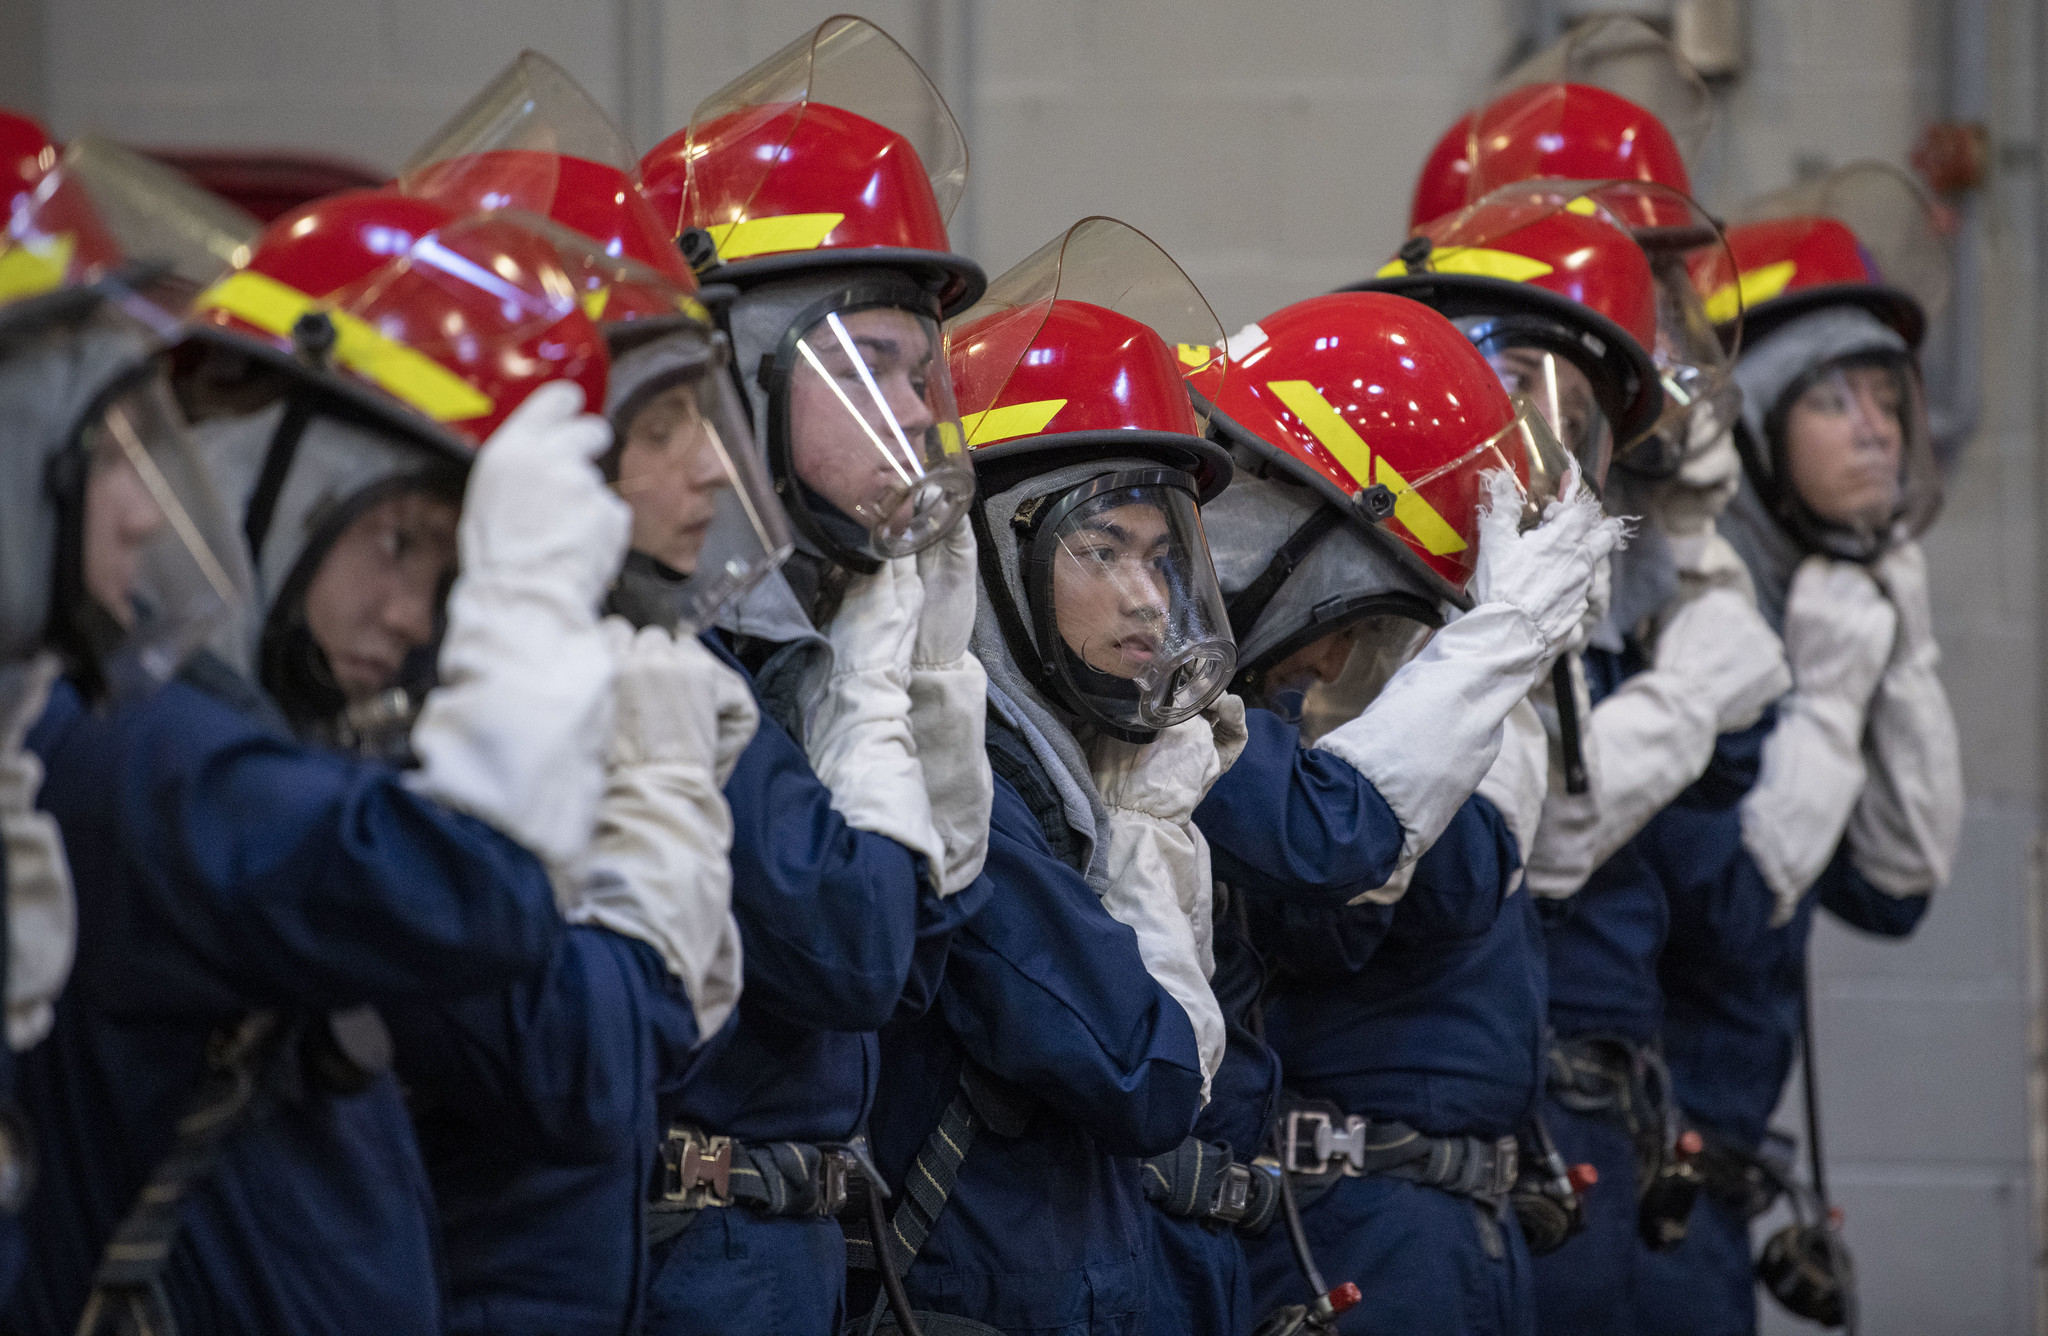 Recruits secure their head gear during firefighting training inside the USS Chief Firefighter Trainer at Recruit Training Command on Jan. 12, 2021, at Great Lakes, Ill. (Seaman Maurice Brown/Navy)